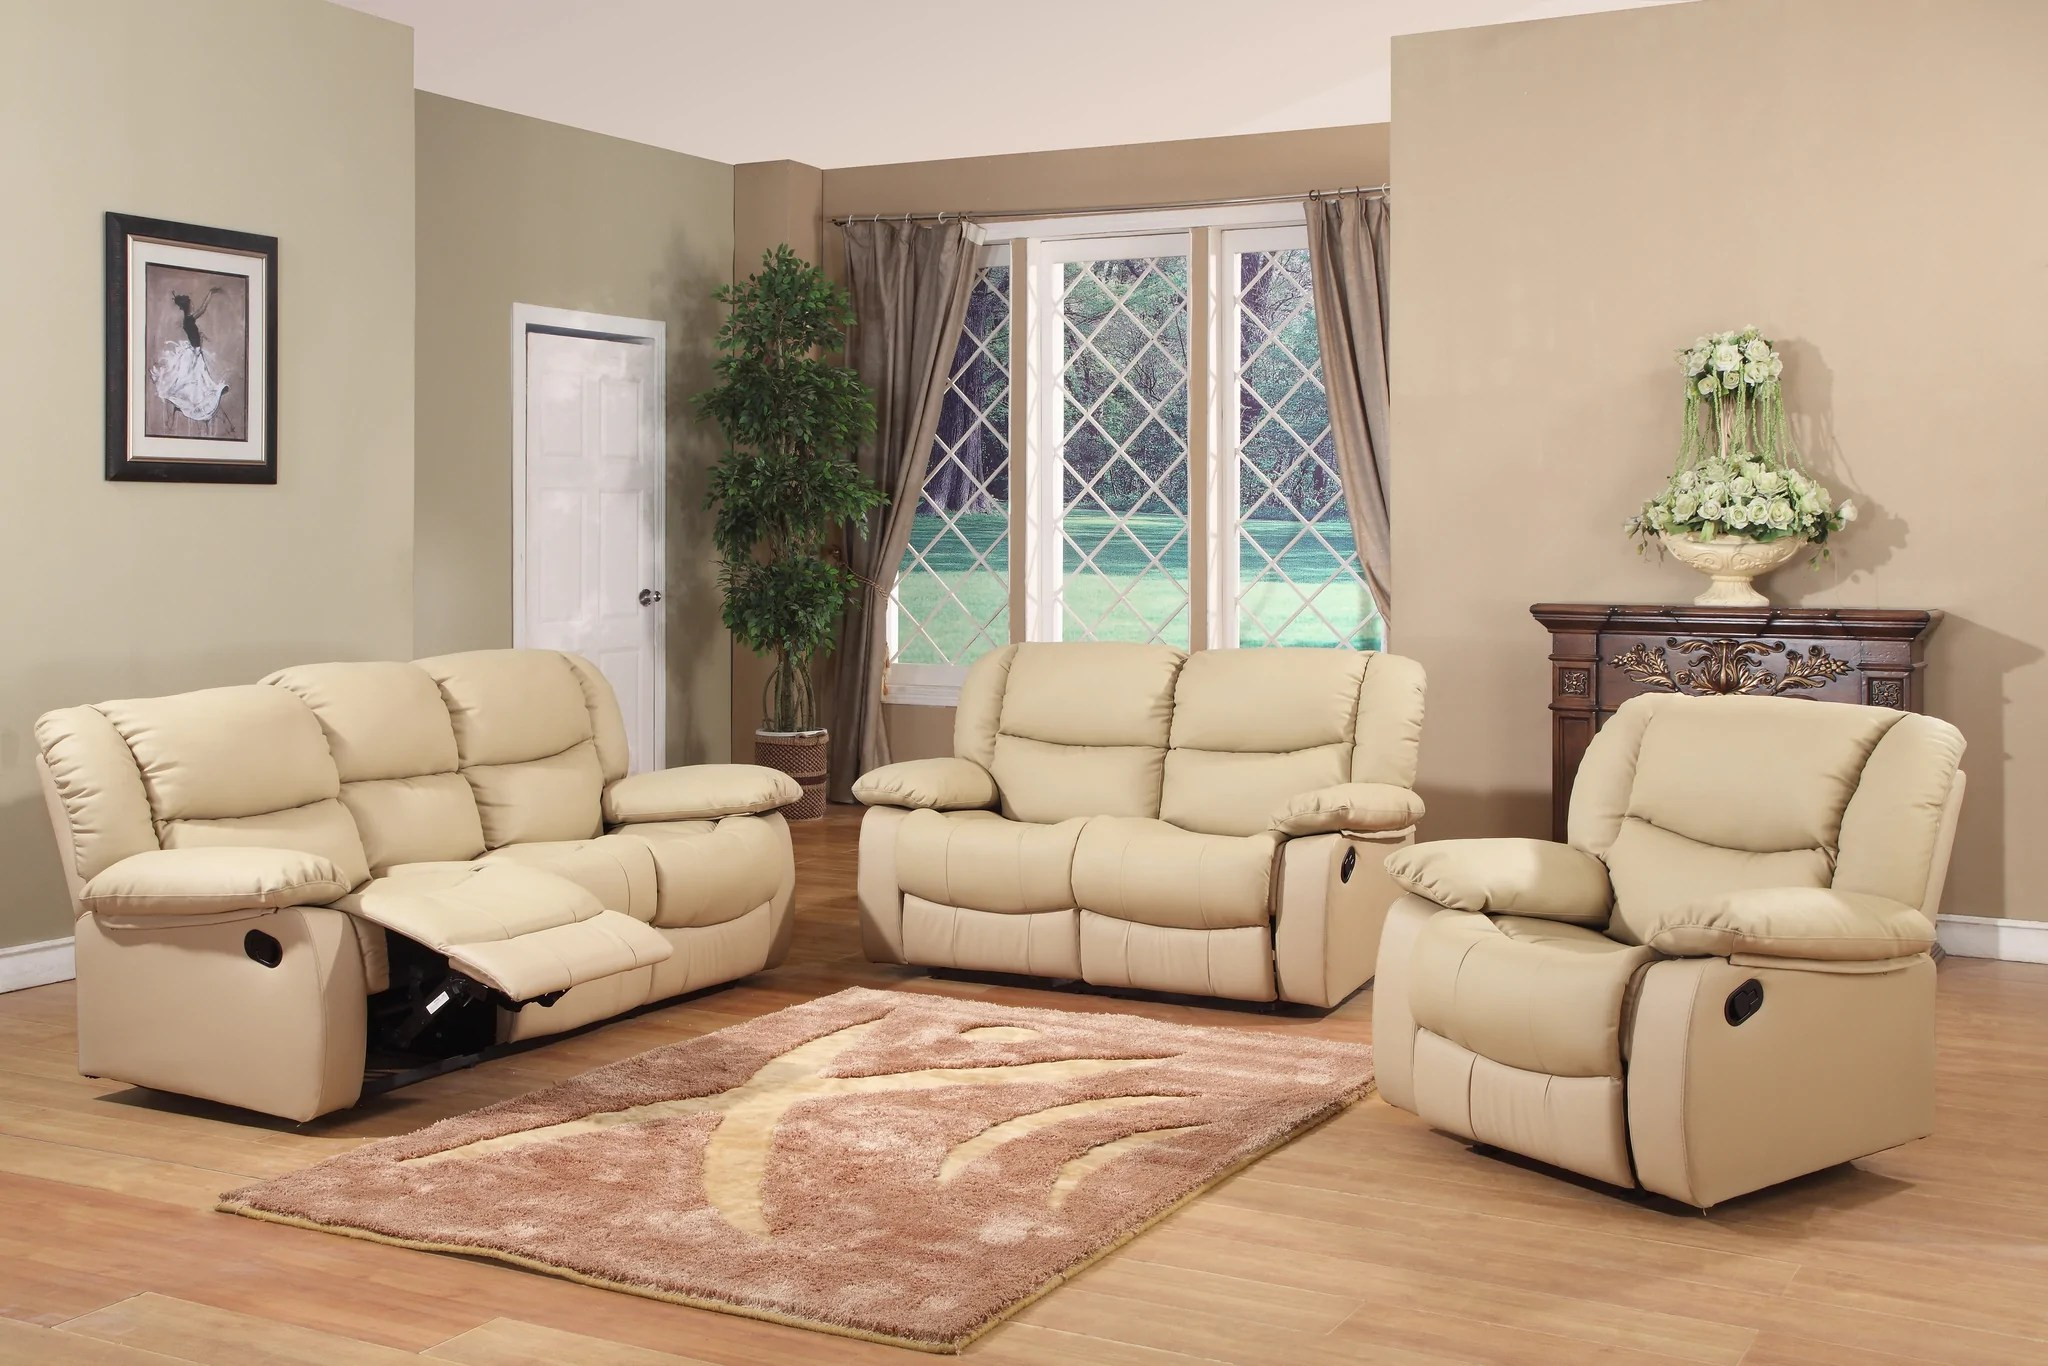 brooklyn bonded leather lounger chair and ottoman desk white black chocolate merlot or putty upholstered microfiber transitional configurable motion